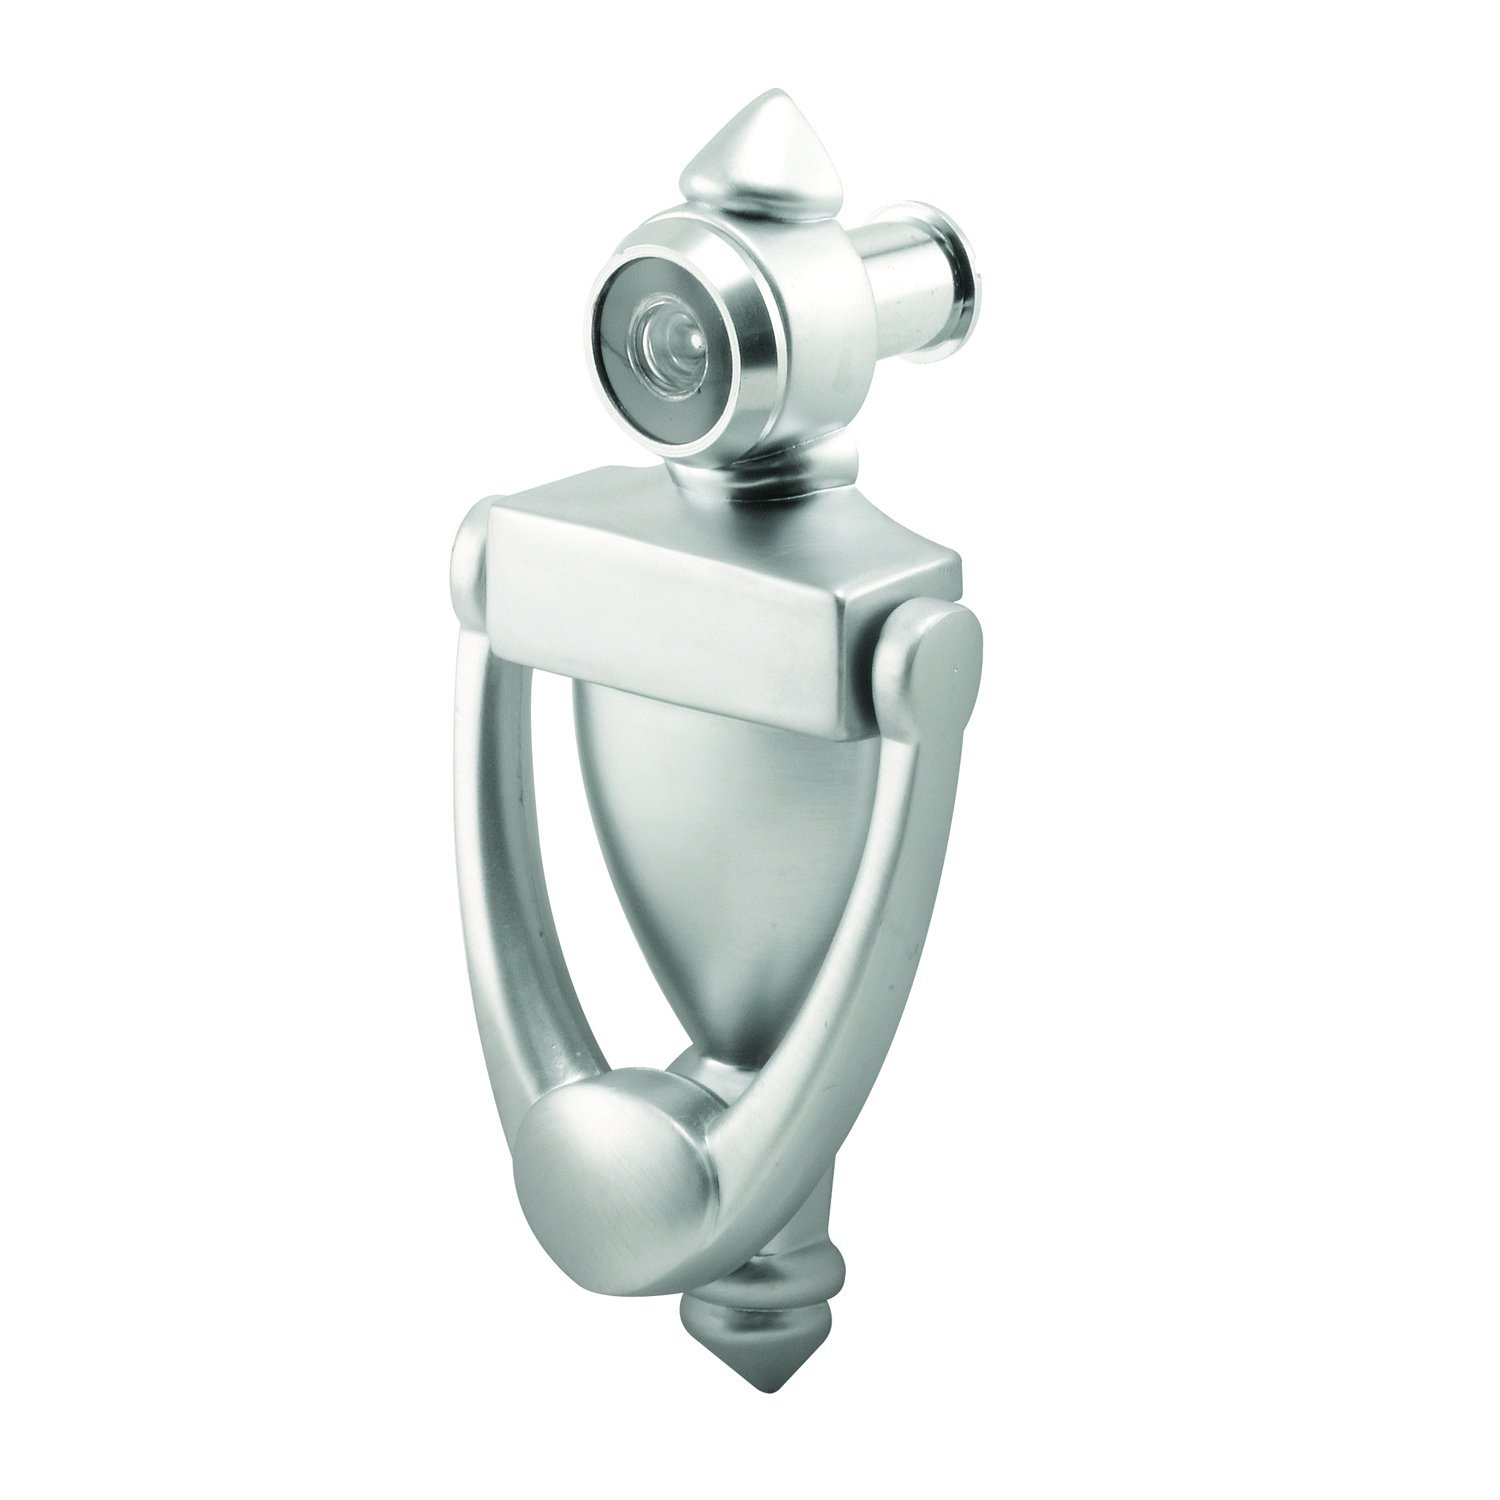 Prime-Line MP10327 Door Knocker and Viewer, 9/16 in. Bore, 160-Degree View Angle, Satin Nickel, Pack of 1